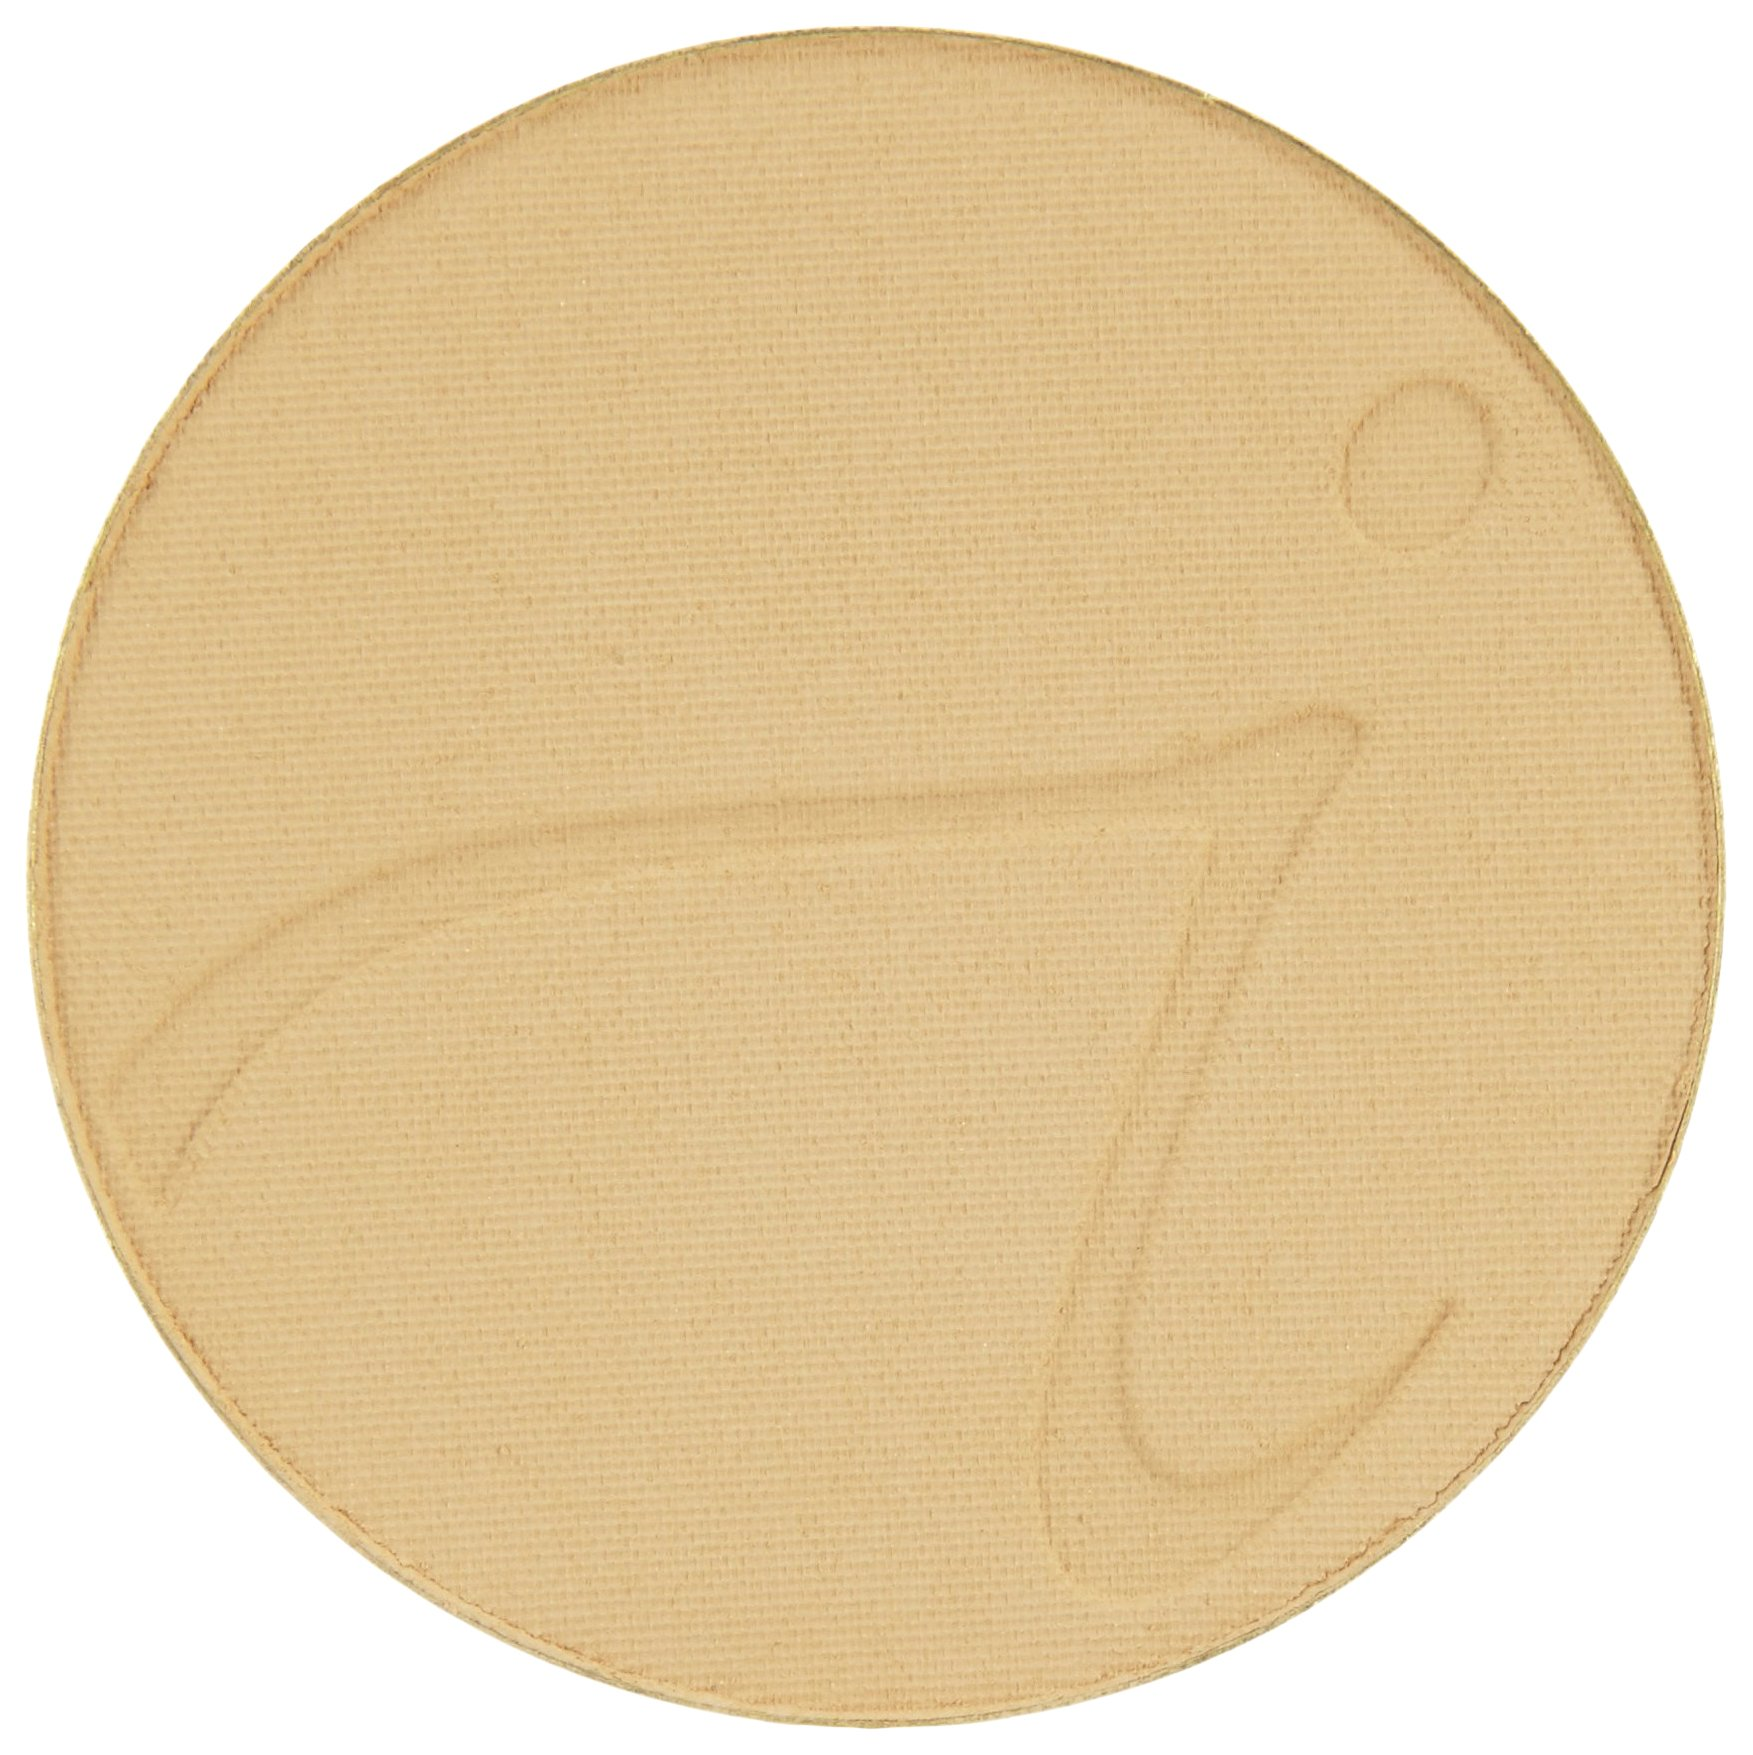 jane iredale PurePressed Base SPF 20 Mineral Foundation Refill, Golden Glow by jane iredale